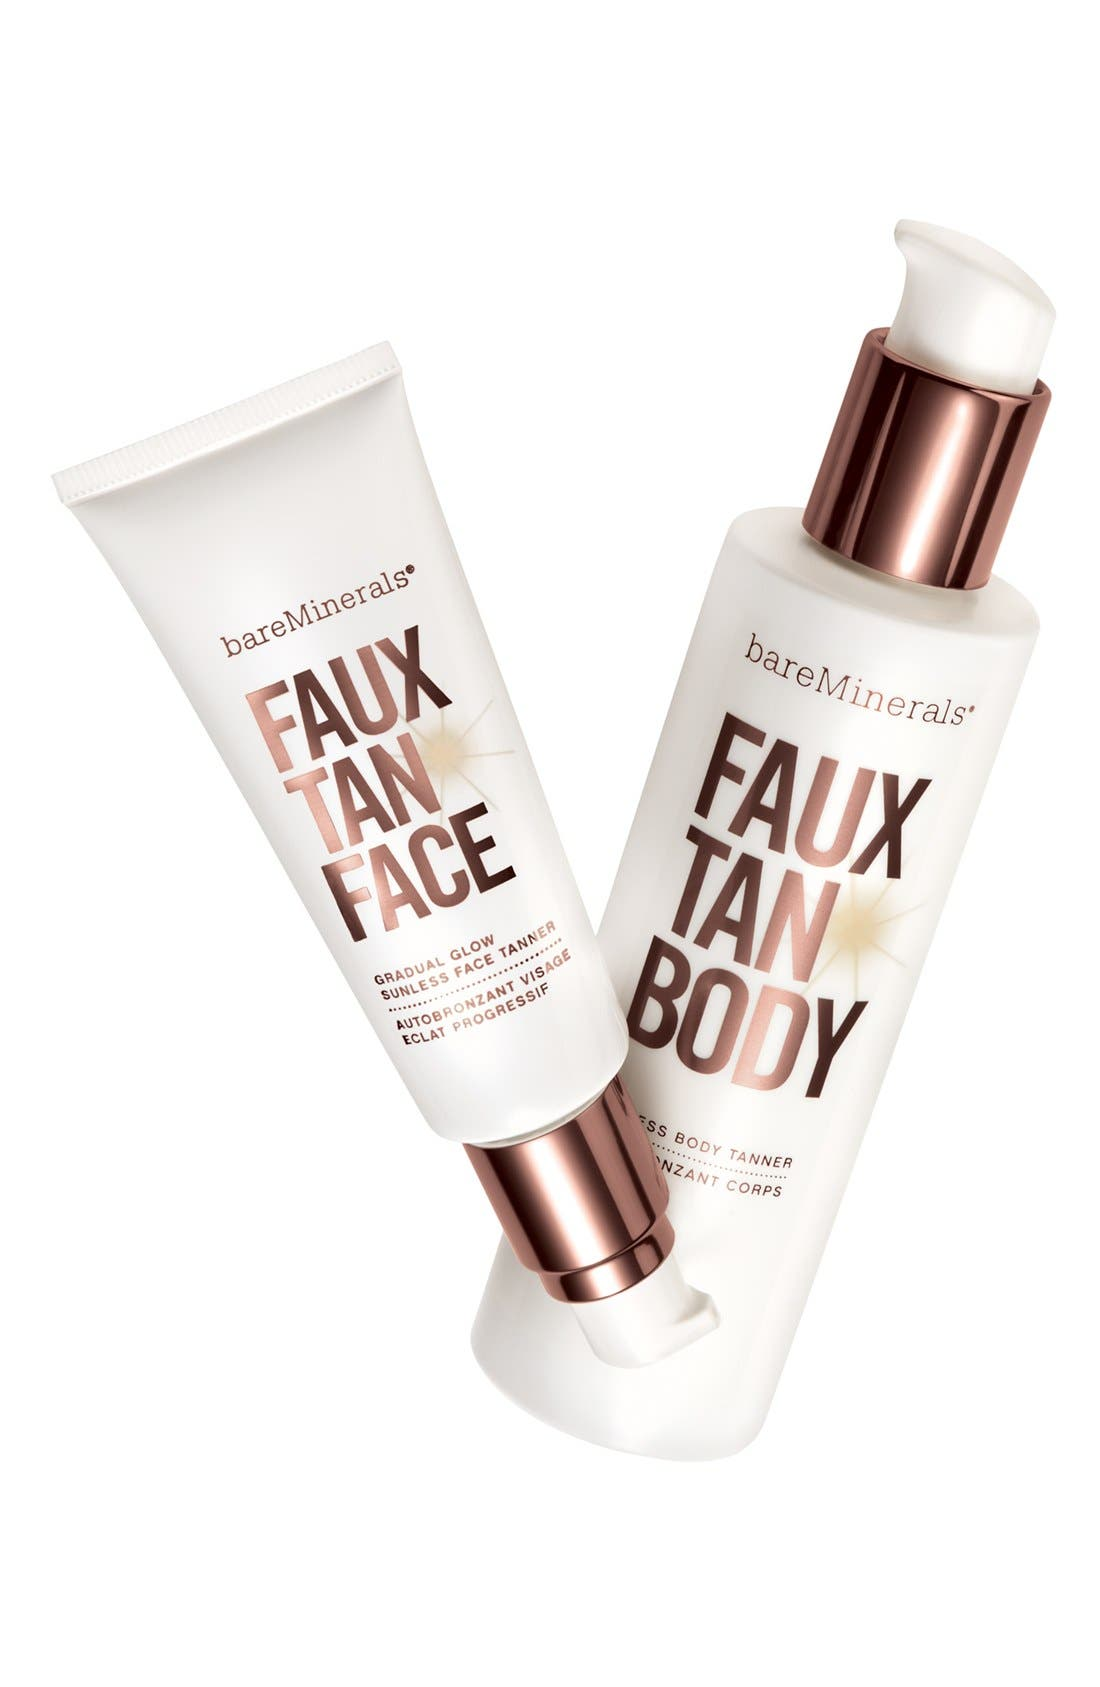 Faux Tan Sunless Tanner for Body, Main, color, 200